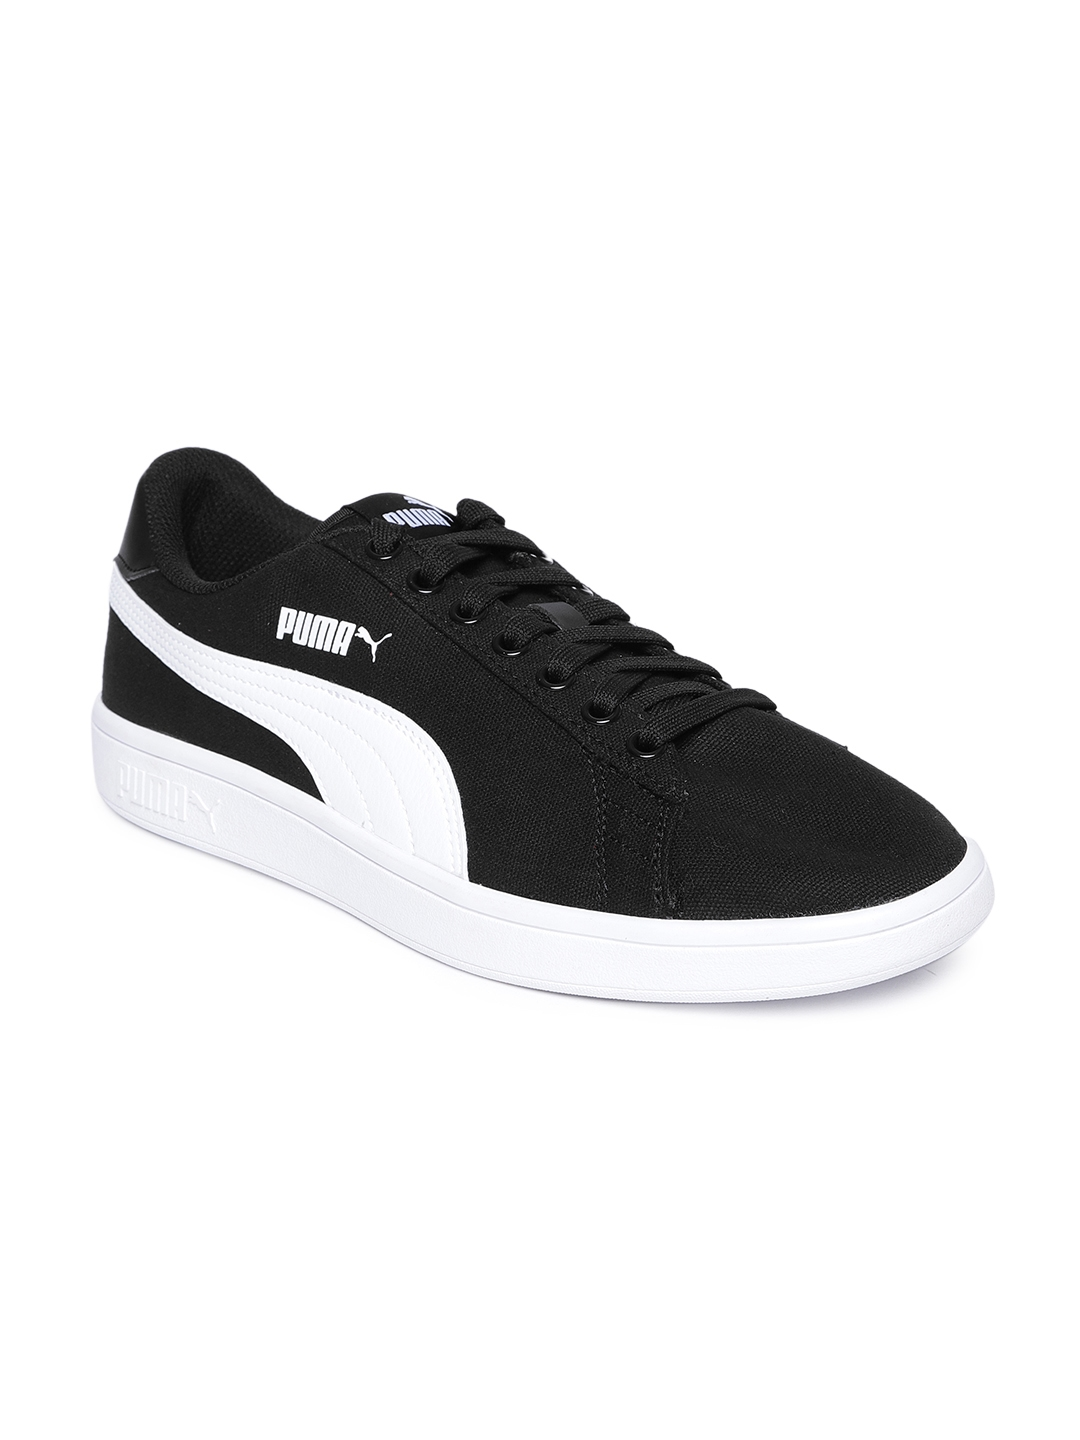 1a644125402a Buy Puma Unisex Black Smash V2 CV Sneakers - Casual Shoes for Unisex ...